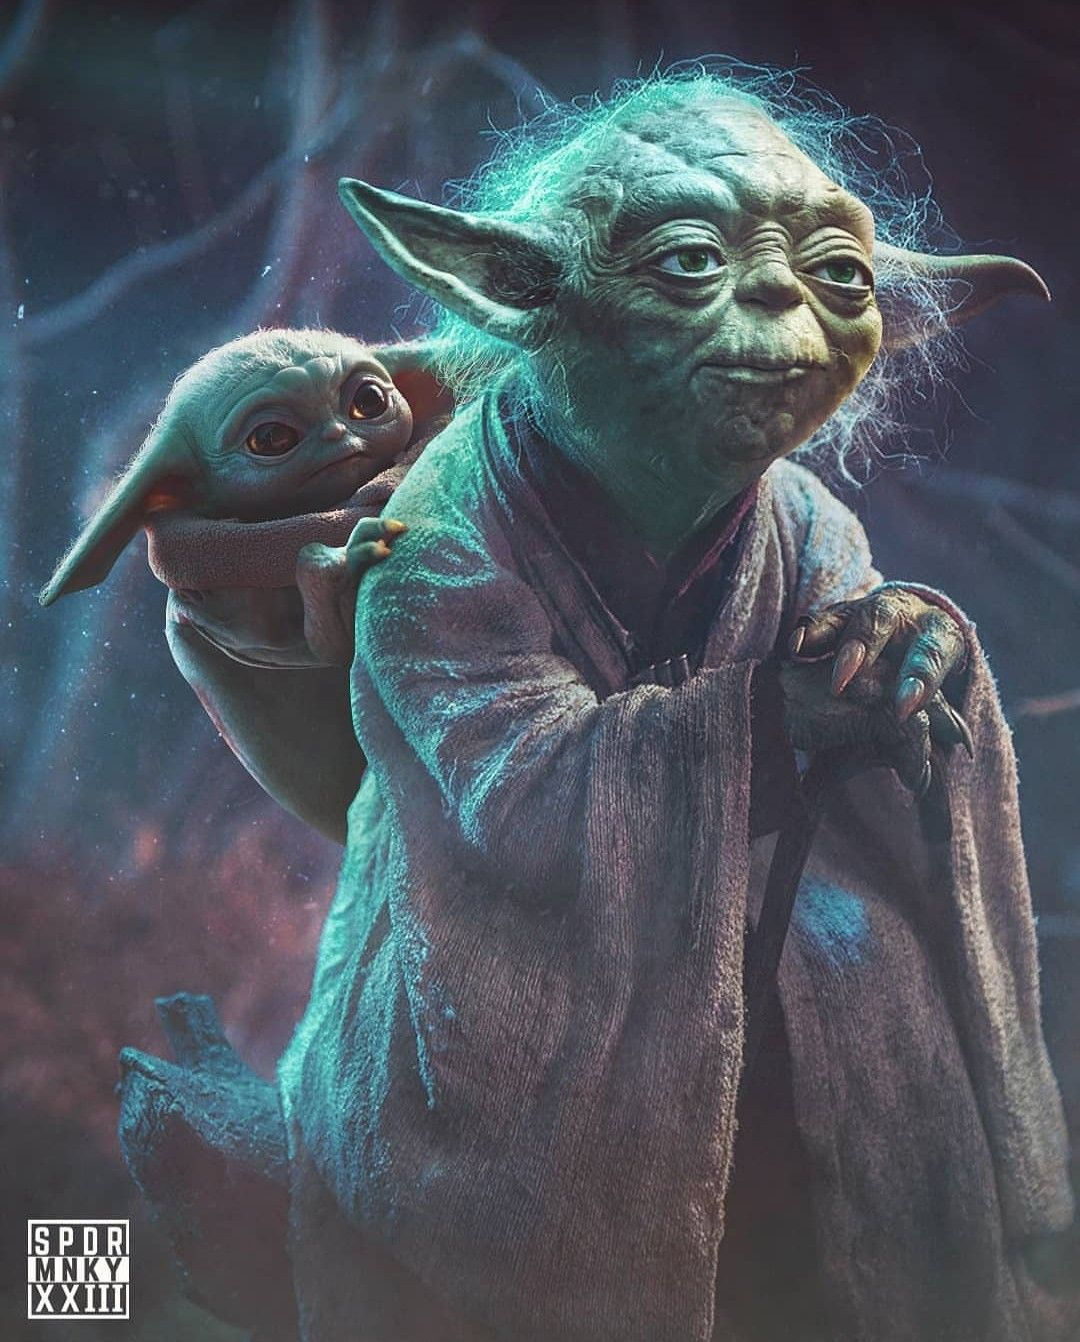 Master Yoda With The Child In 2020 Star Wars Images Star Wars Memes Star Wars Pictures